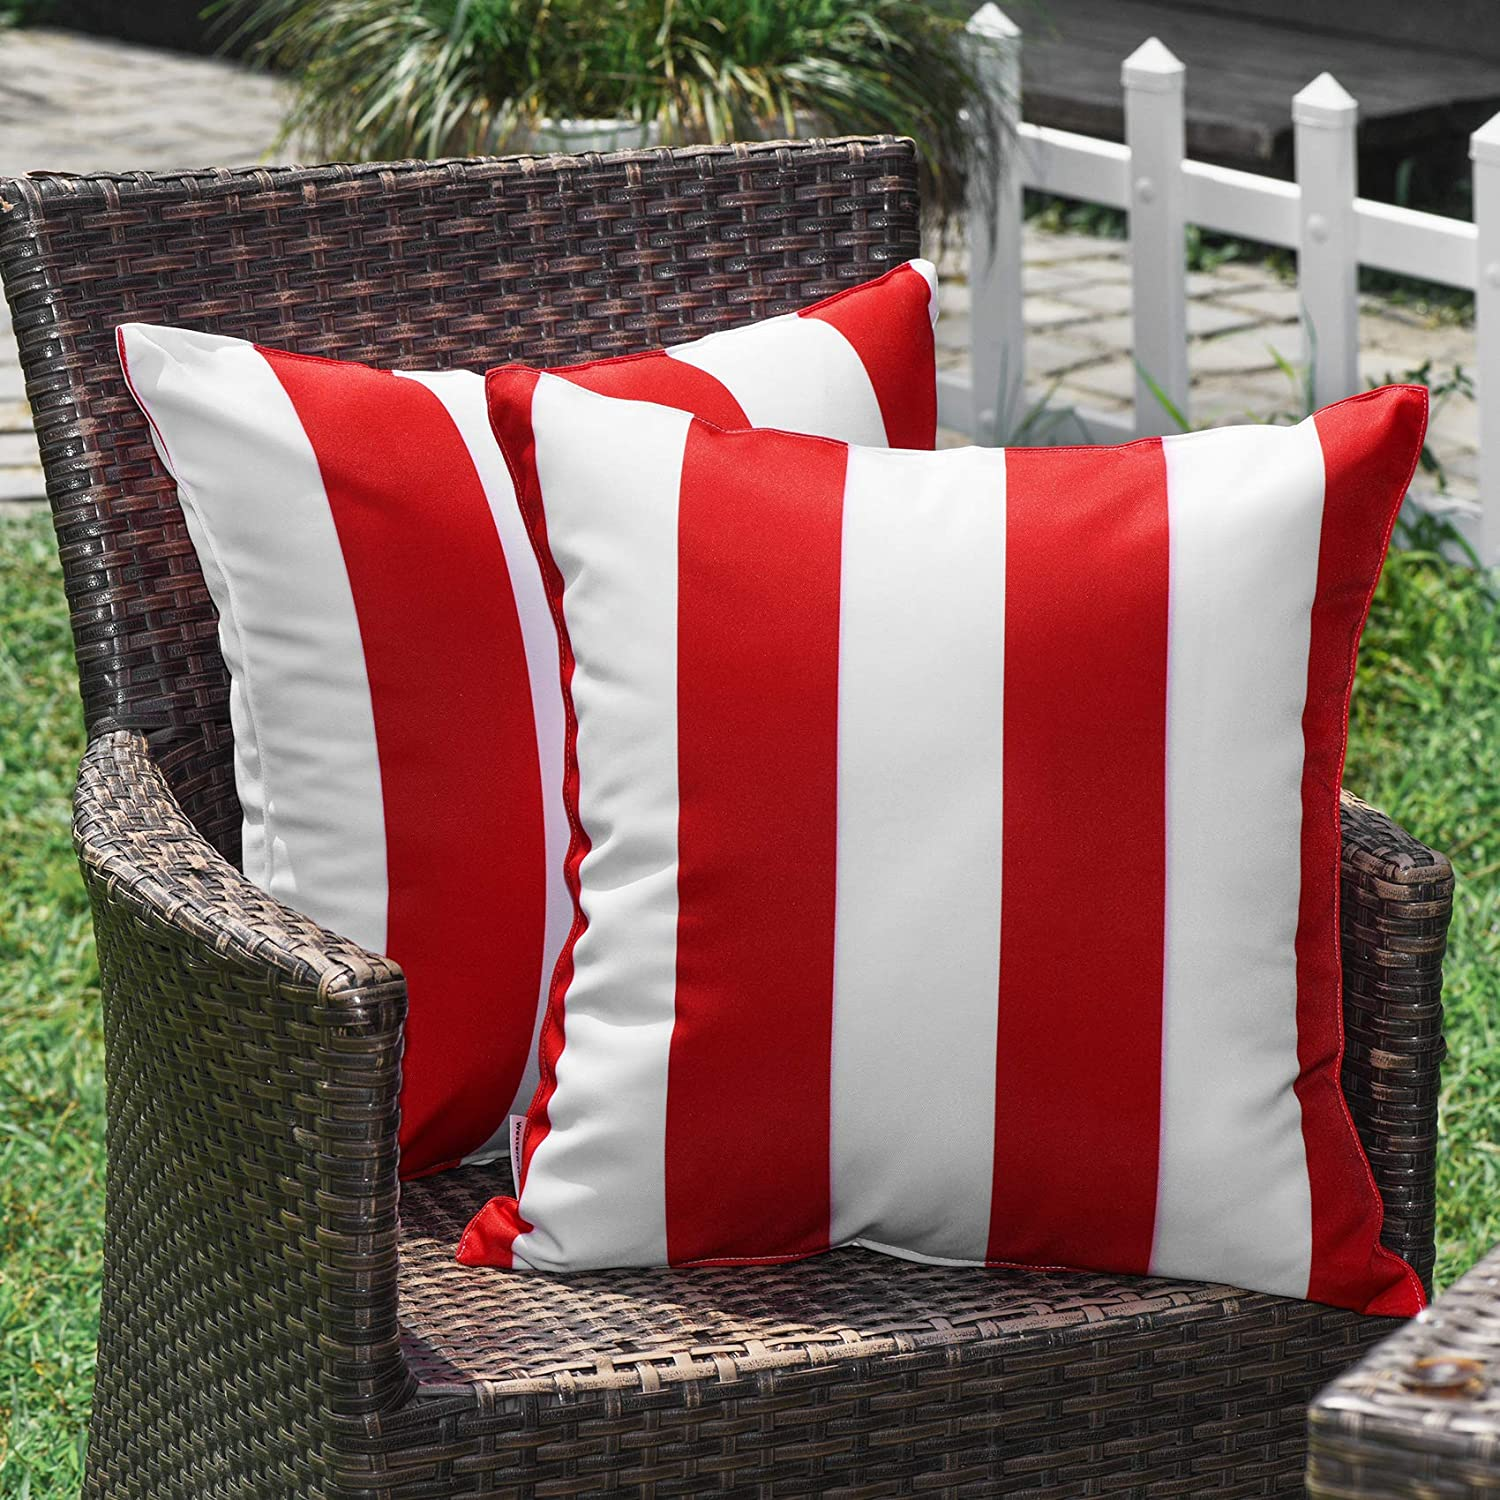 WESTERN HOME WH Outdoor Pillow Covers 18x18 Waterproof, Stripe Square Pillowcases Patio Christmas Throw Pillow Covers Cushions for Couch Bench Tent Garden - Pack of 2 Pillow Covers Red